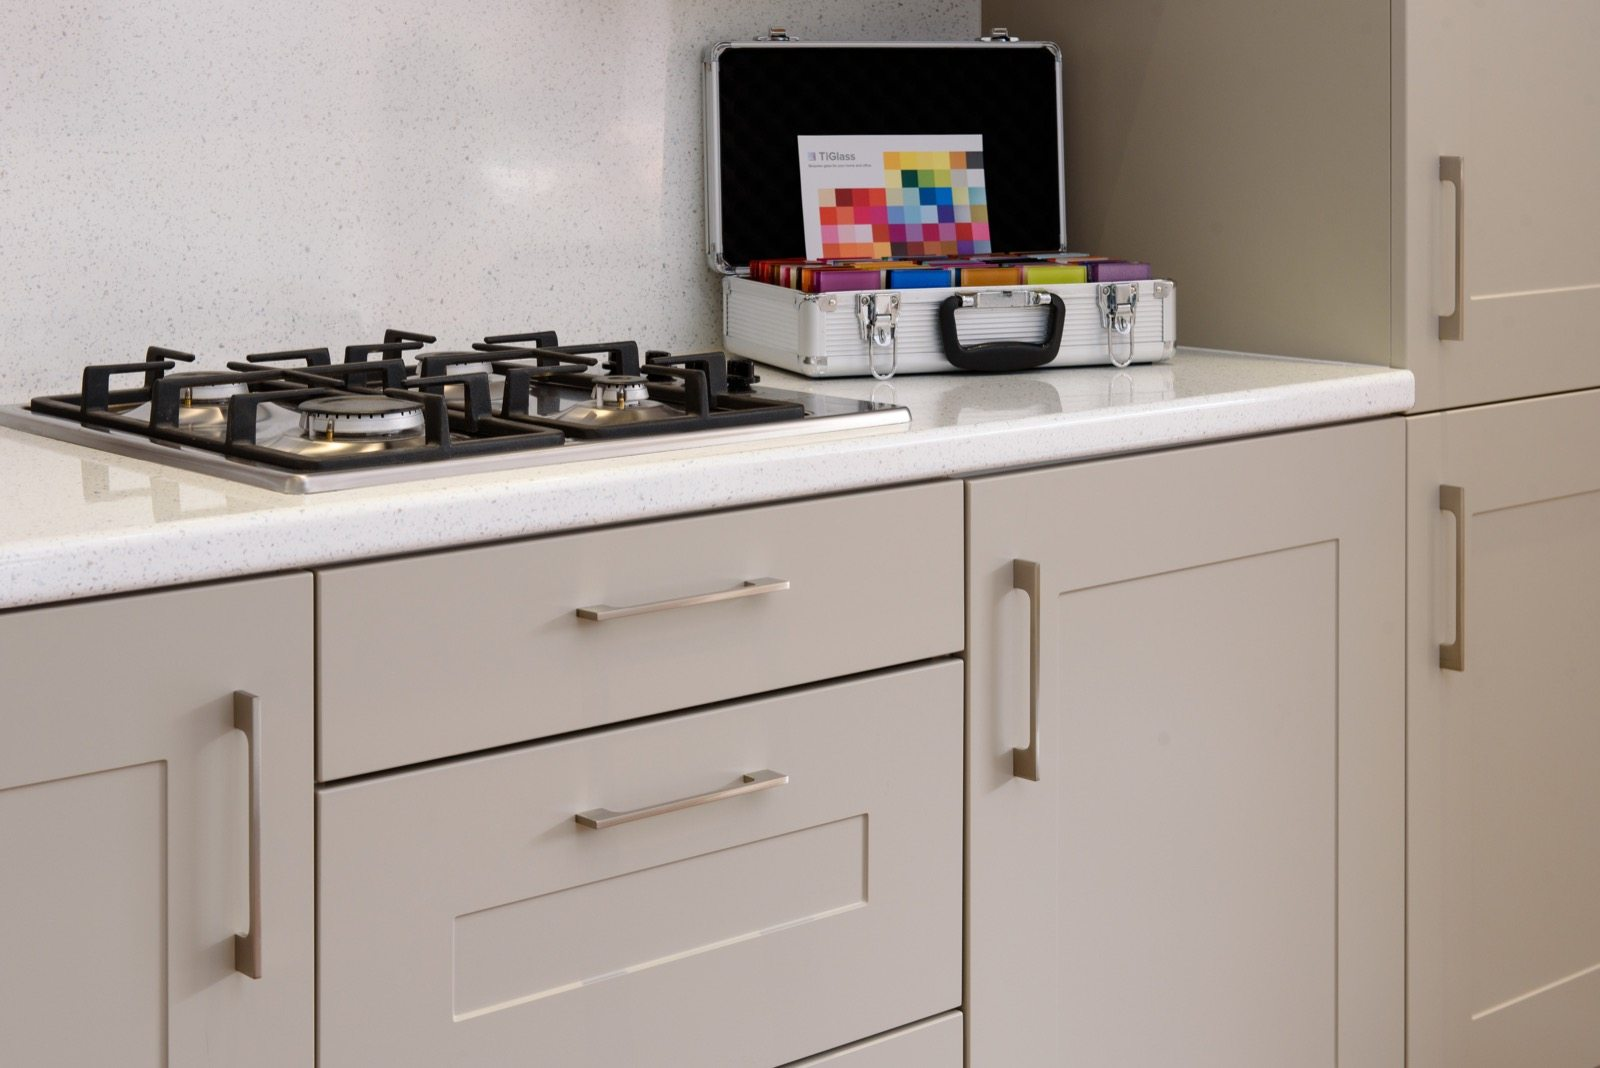 chelmsford kitchen showroom regal kitchens in essex. Black Bedroom Furniture Sets. Home Design Ideas